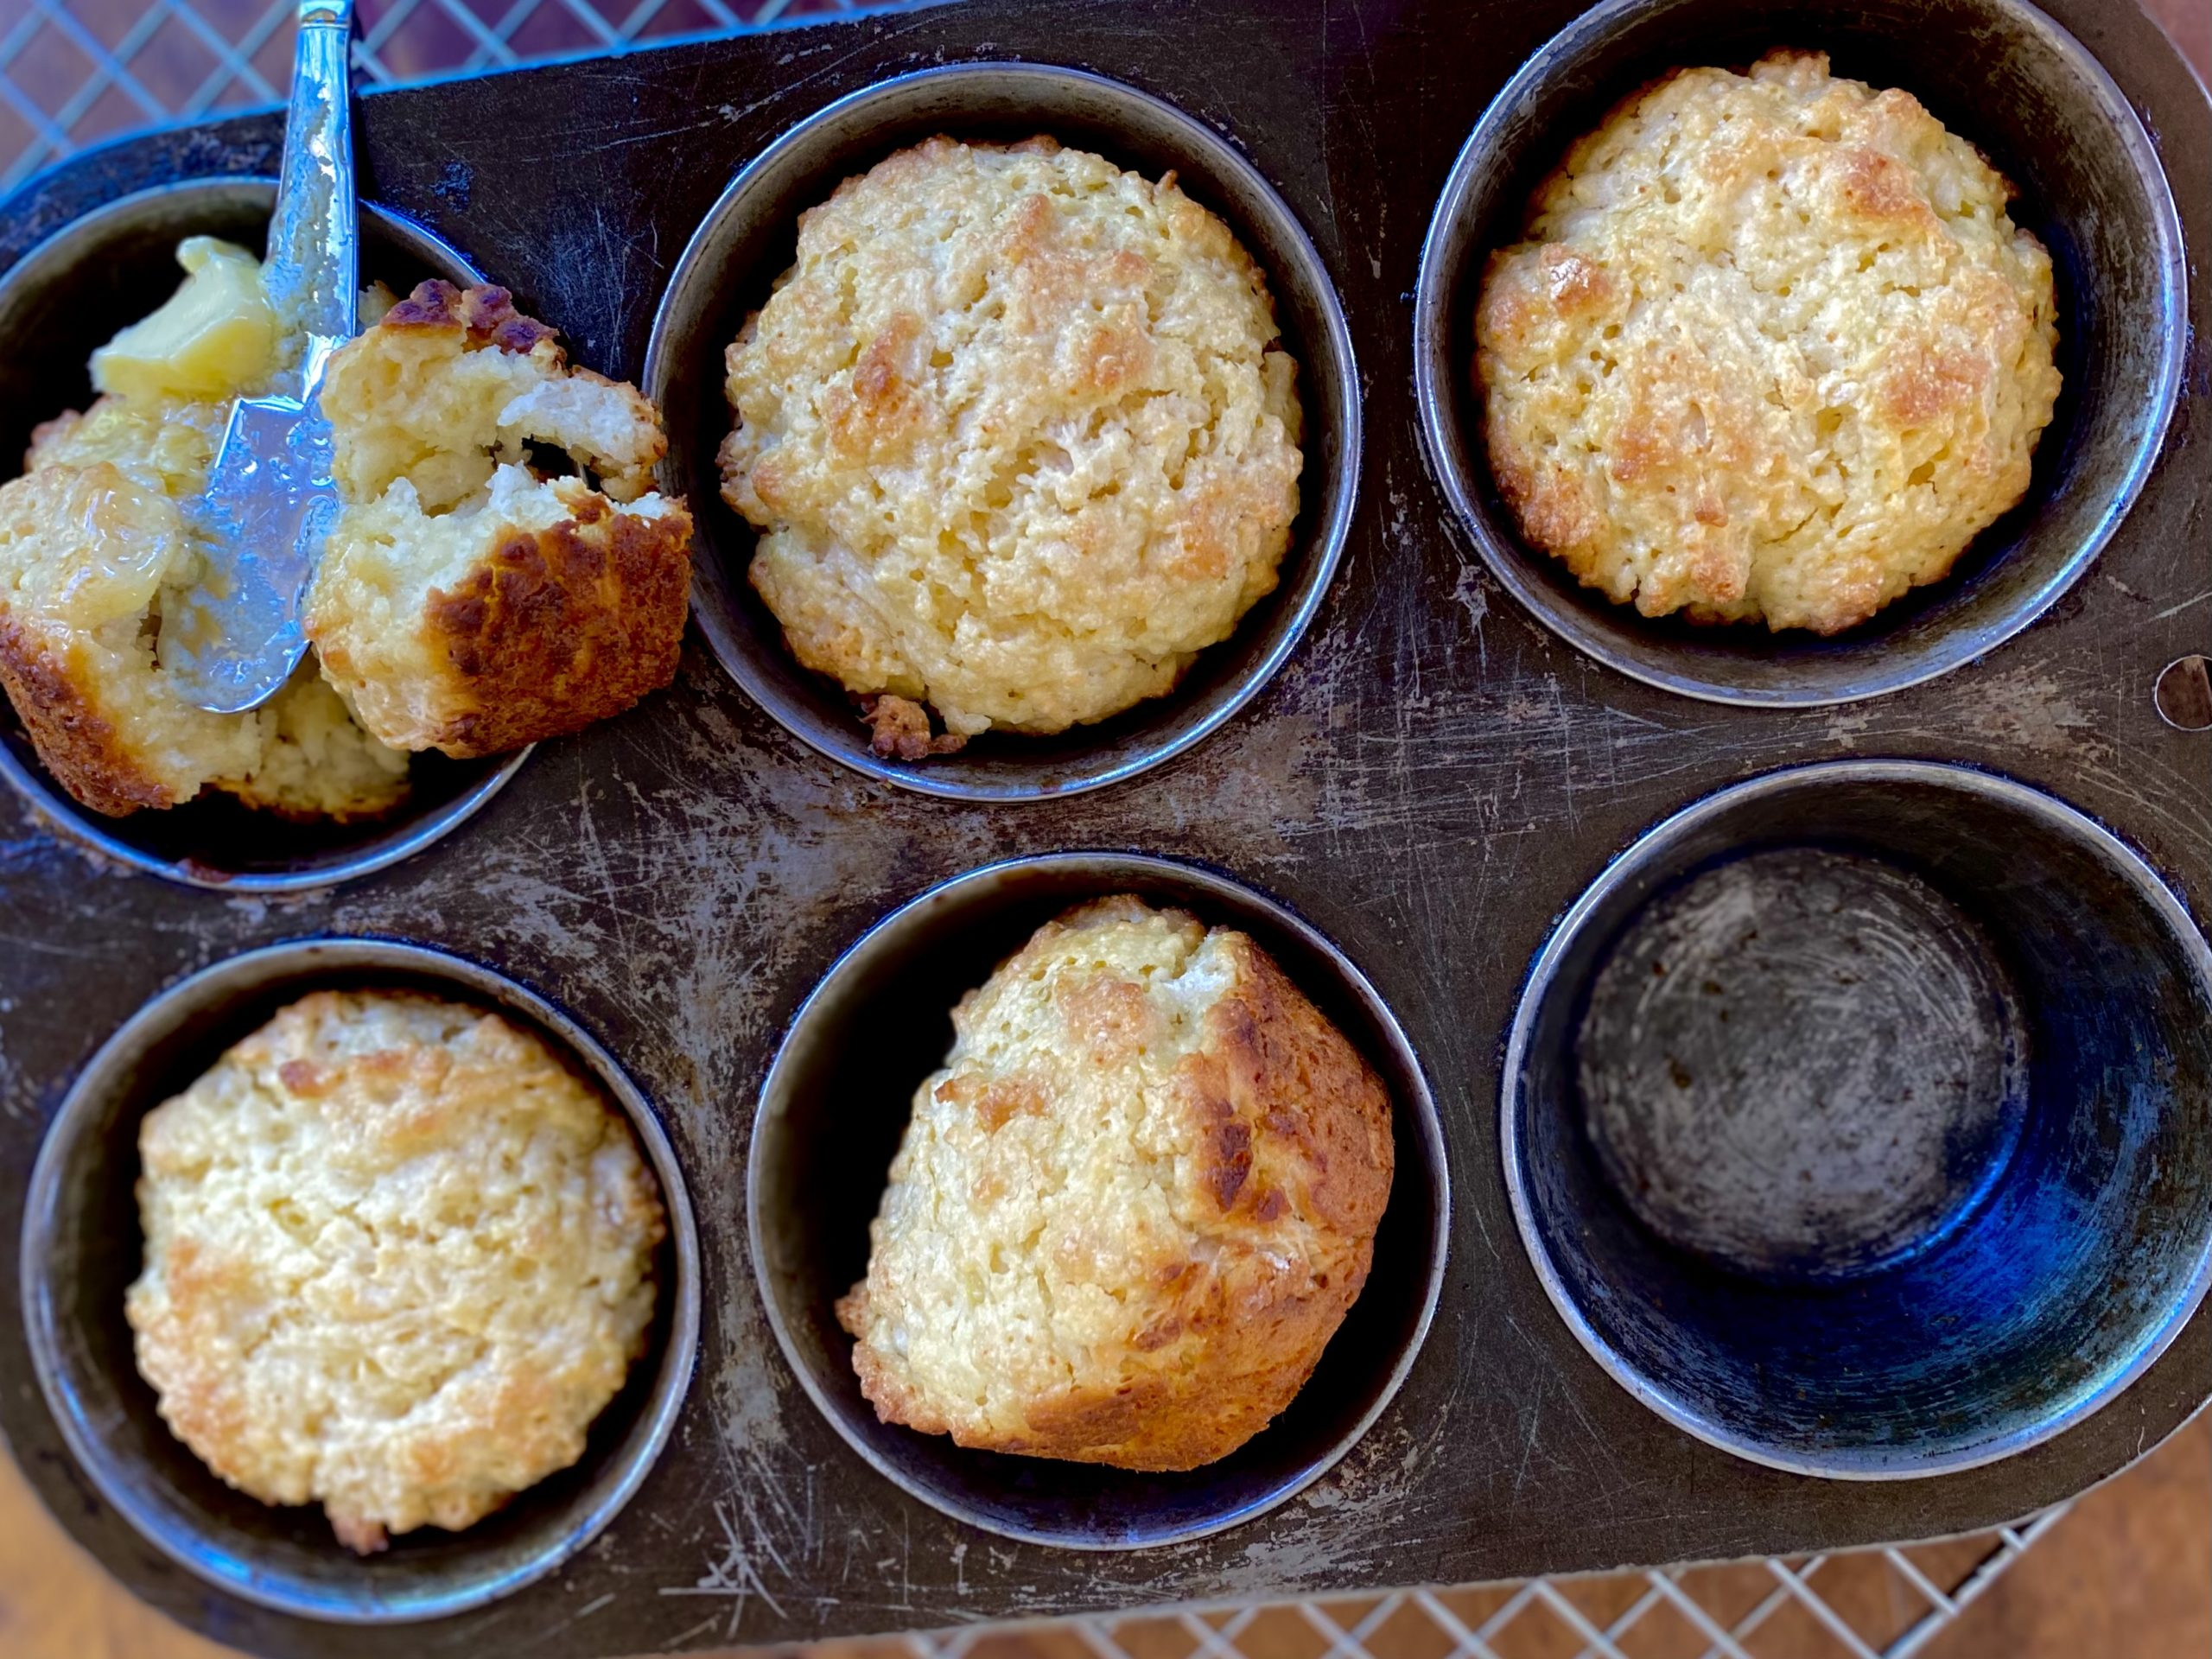 TGIFOOD: What's cooking today: Quick mayo muffins